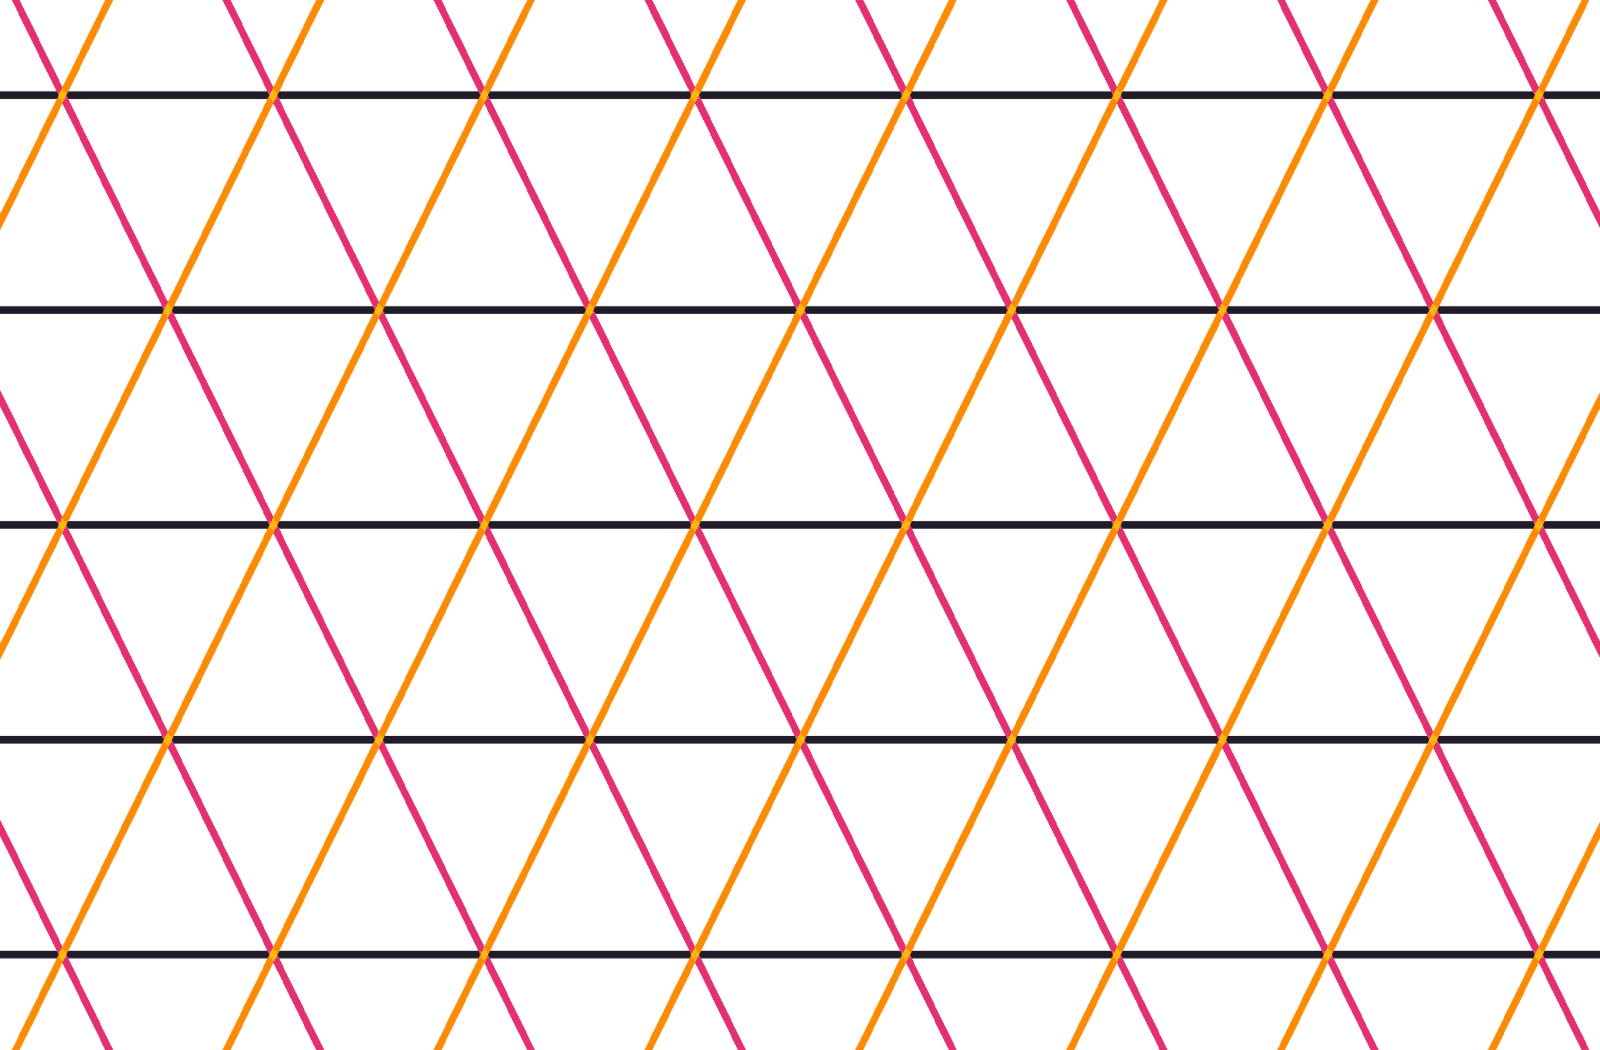 Illustration. Shows the equidistant parallel lines which create the pattern of isosceles triangles.